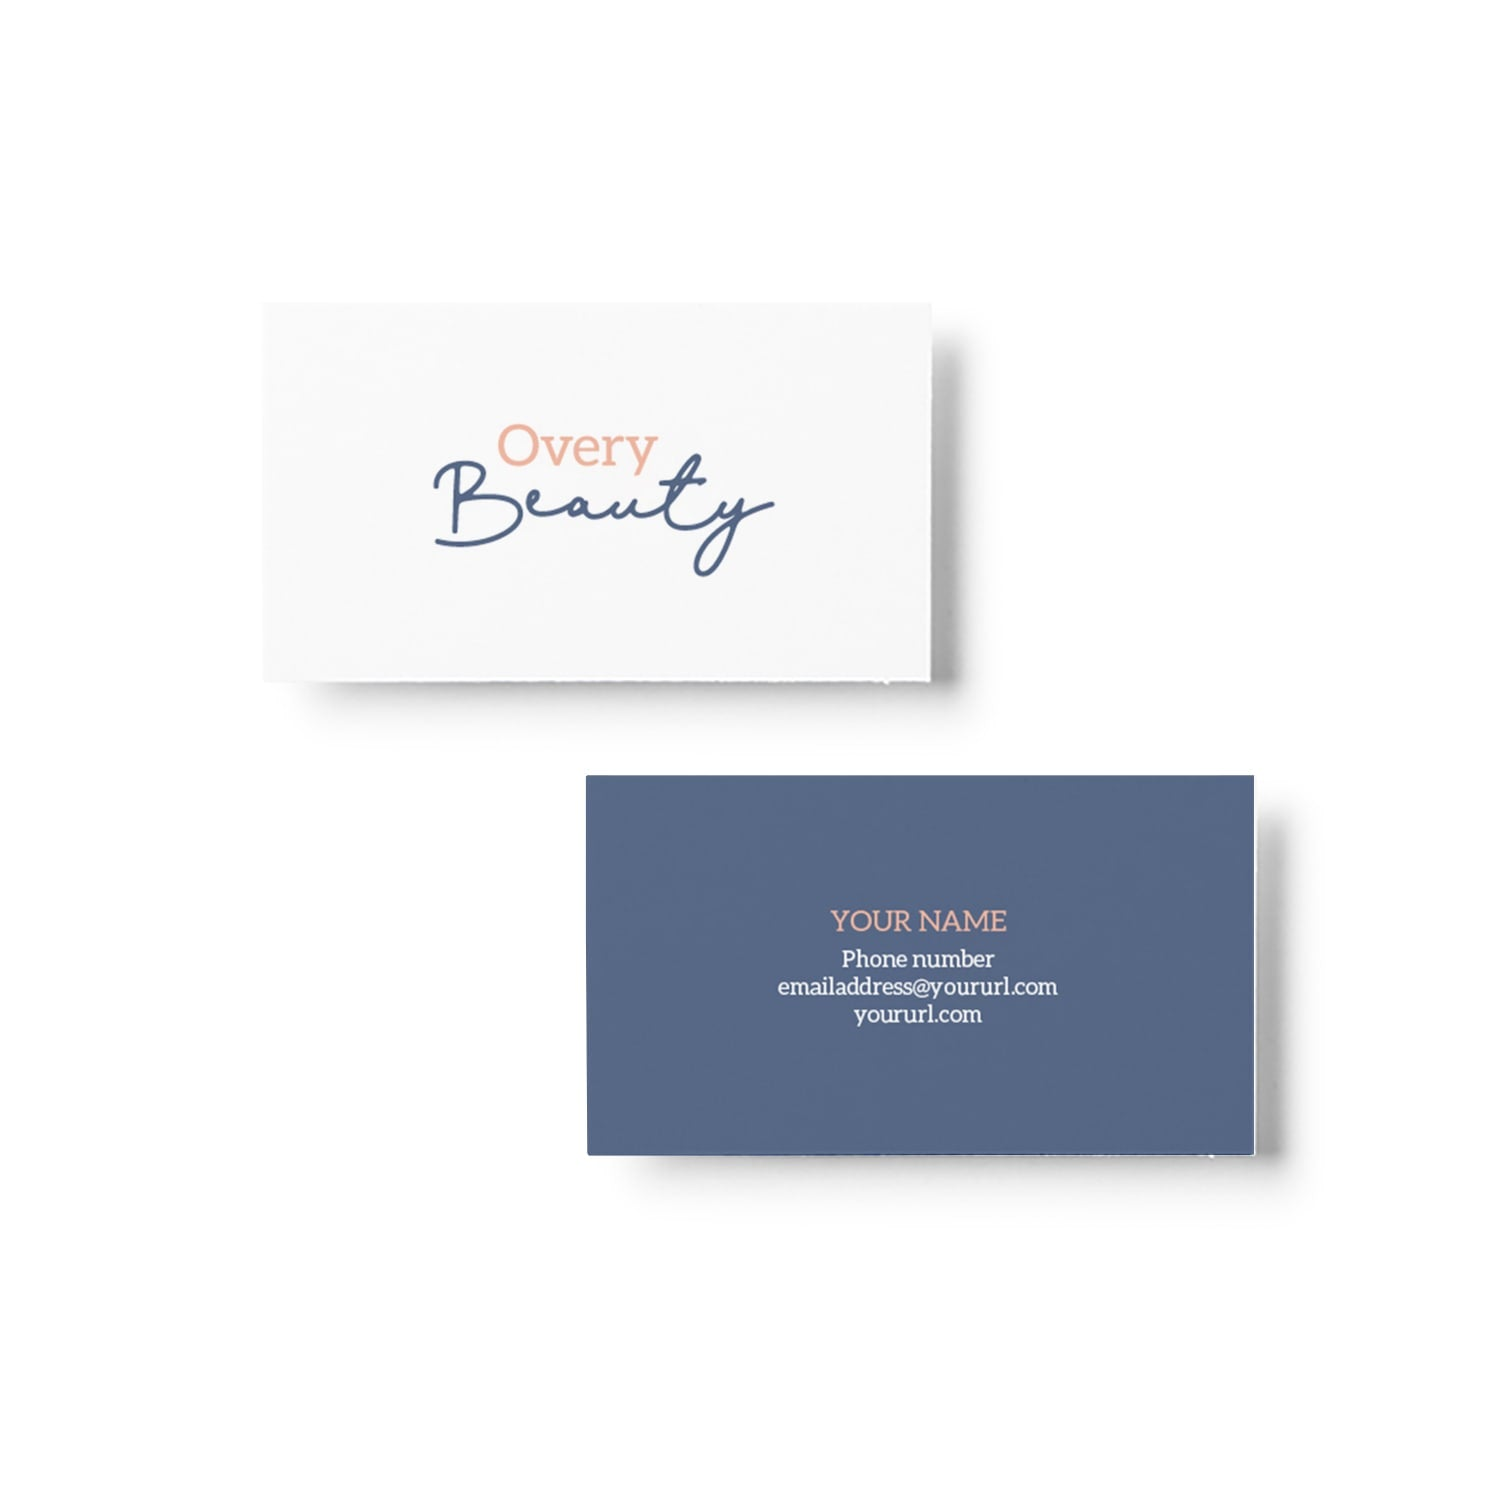 Overy Beauty Business Card Design_Copyright Tiny Crowd